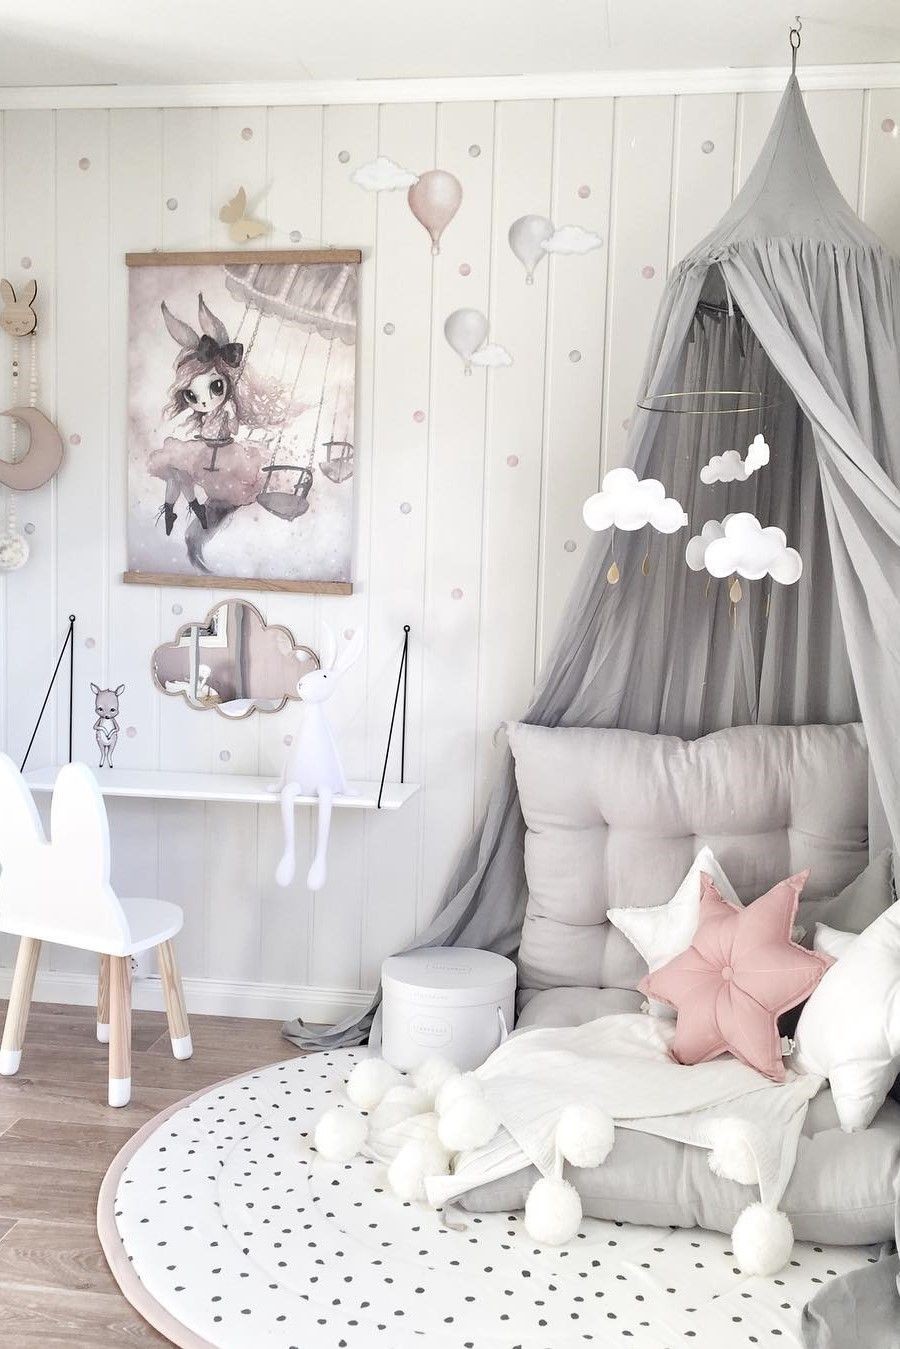 inspiration from instagram @mamma line pastel girls room ideasinspiration from instagram @mamma line pastel girls room ideas, pink and grey girls room design, girls kidsroom, kidsroom decor